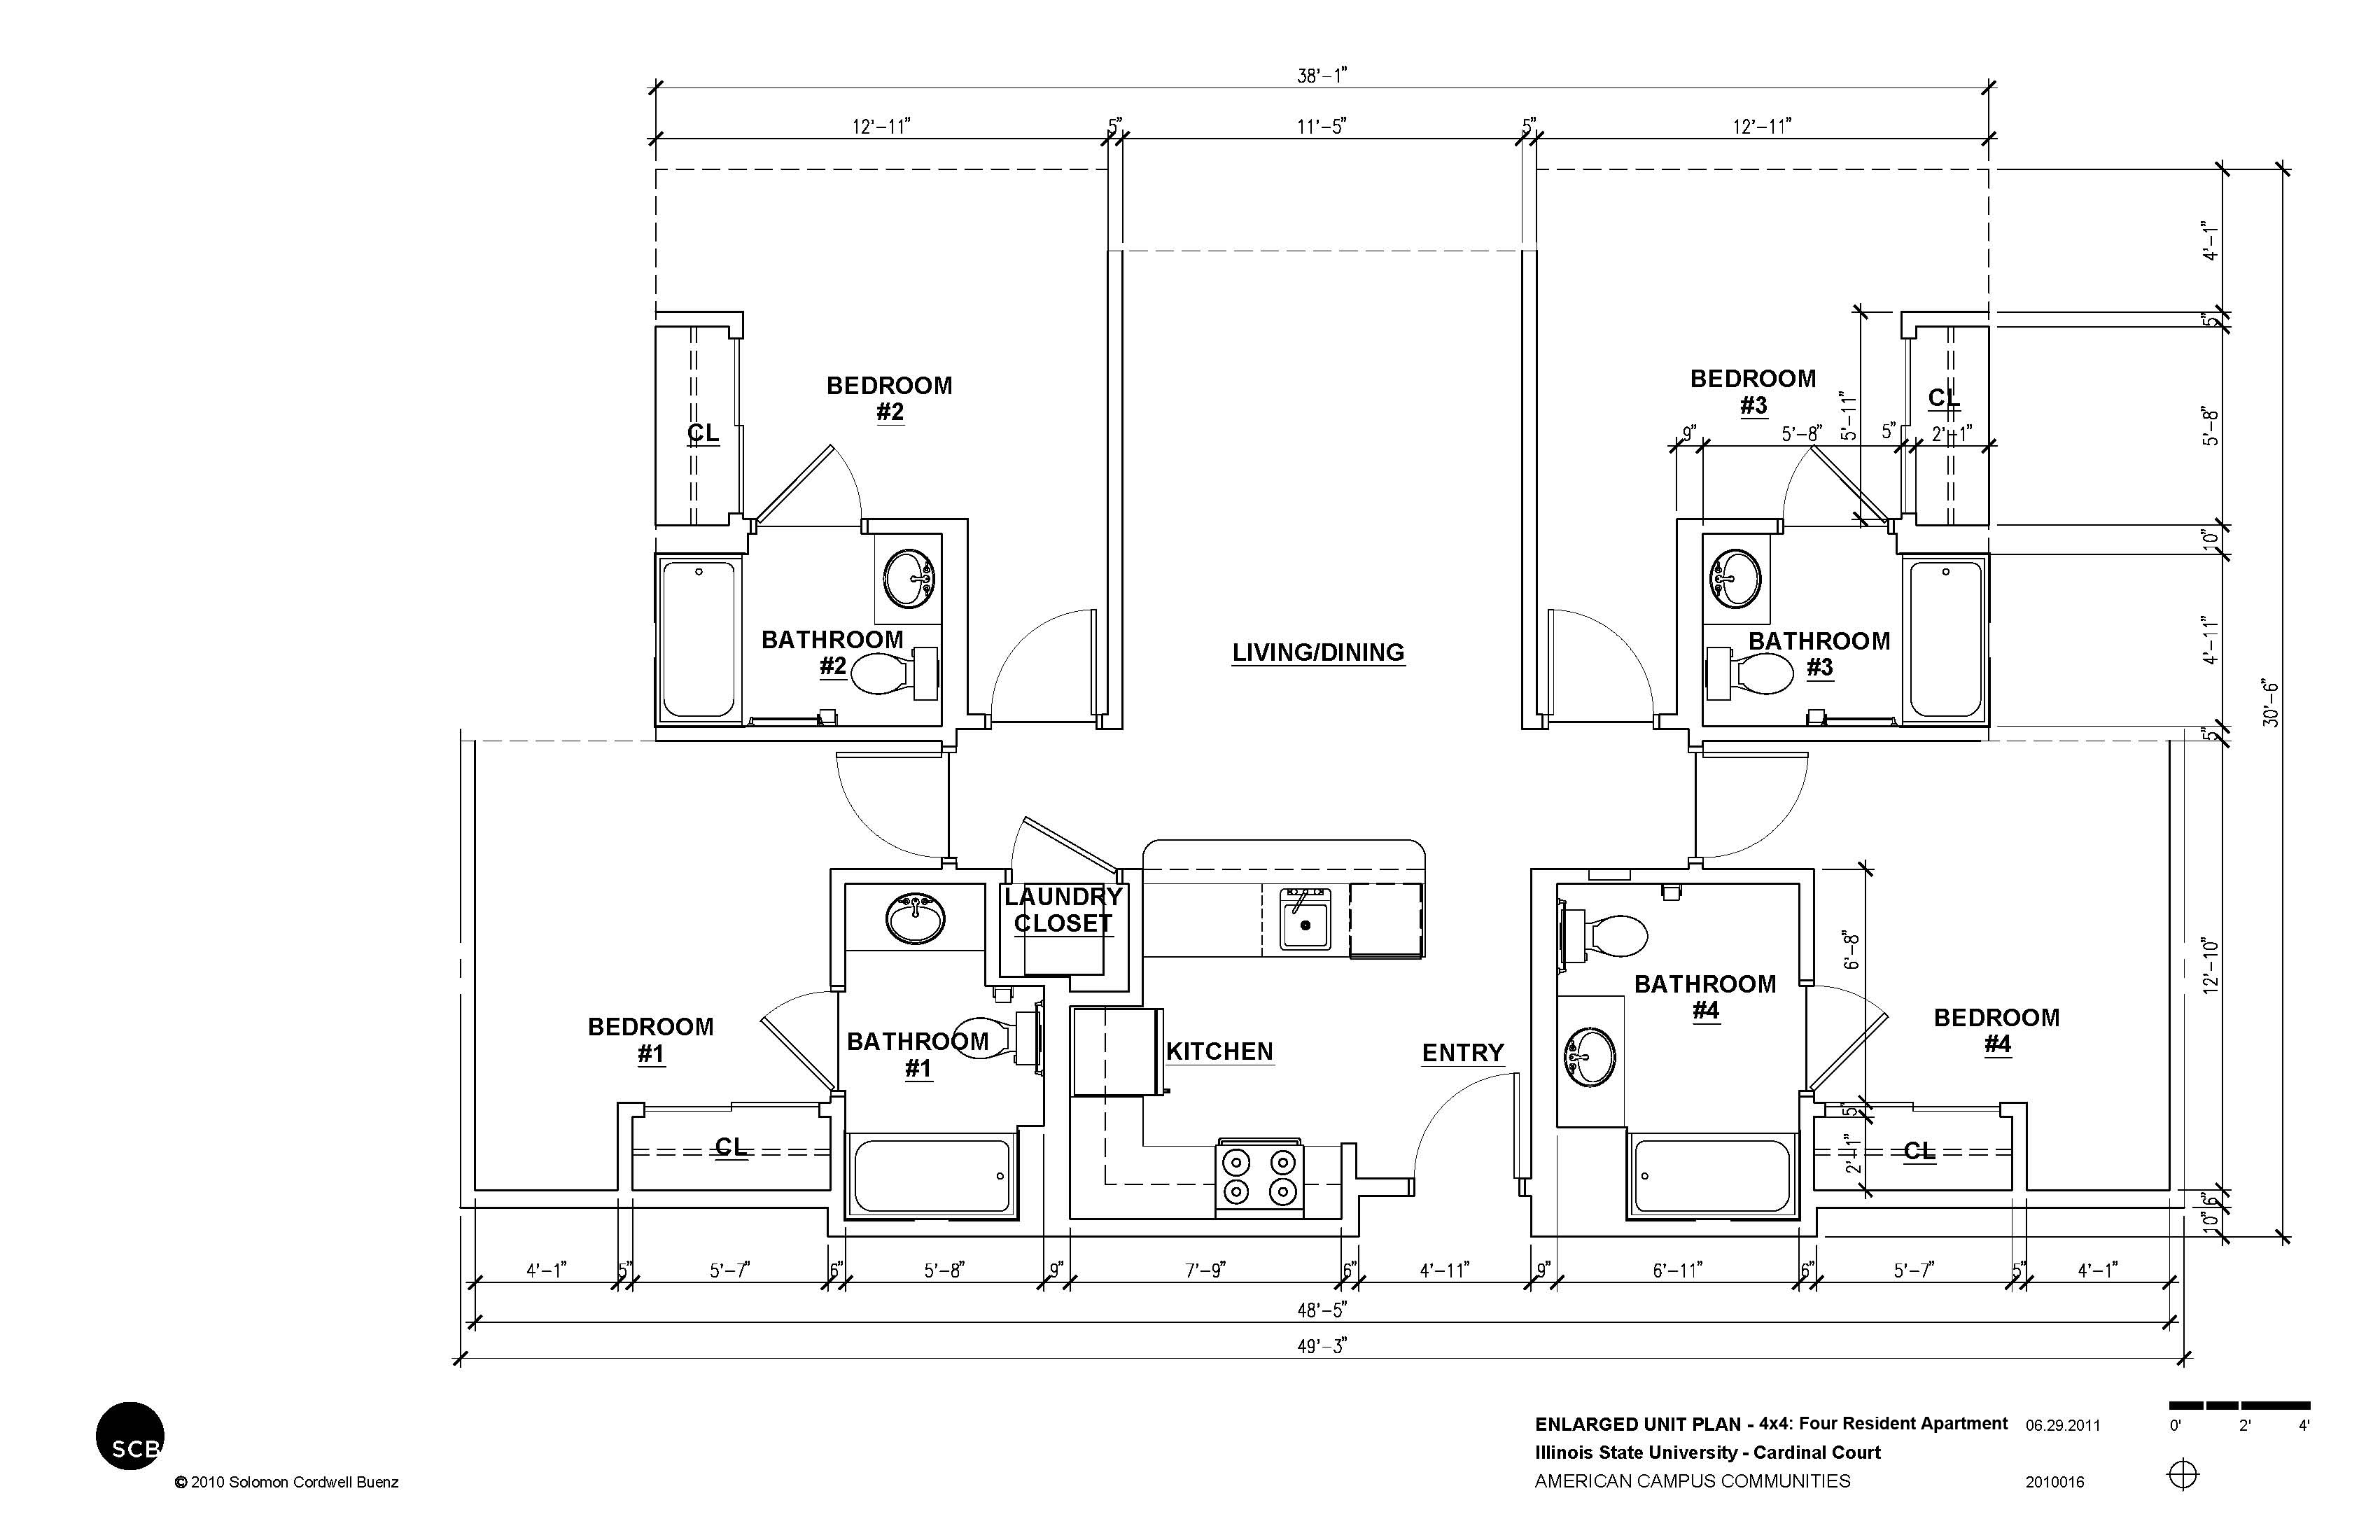 House Plans With Rv Garage Attached furthermore 600 Square Foot House Plans as well Monticello House Plans additionally 1500 Square Foot House moreover House Plans With Wrap Around Porch One Story. on ranch house plans with bats